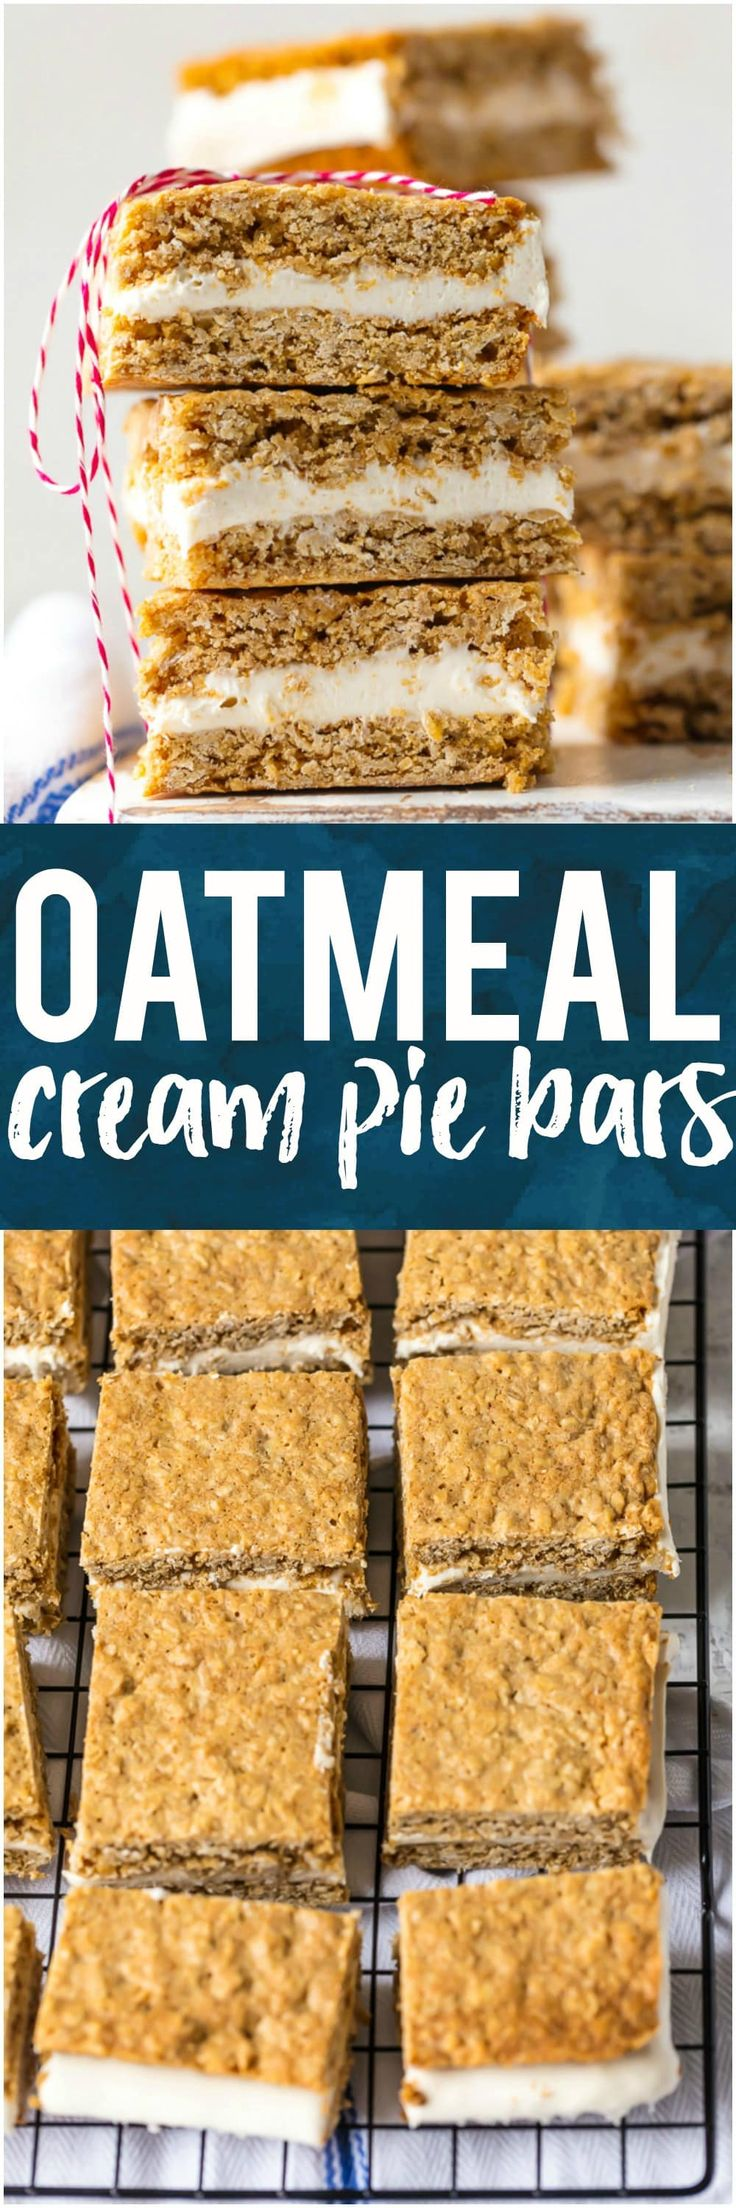 These OATMEAL CREAM PIE BARS are an adult version of a childhood favorite. My dad loves the little Debbie version; I should make him these!